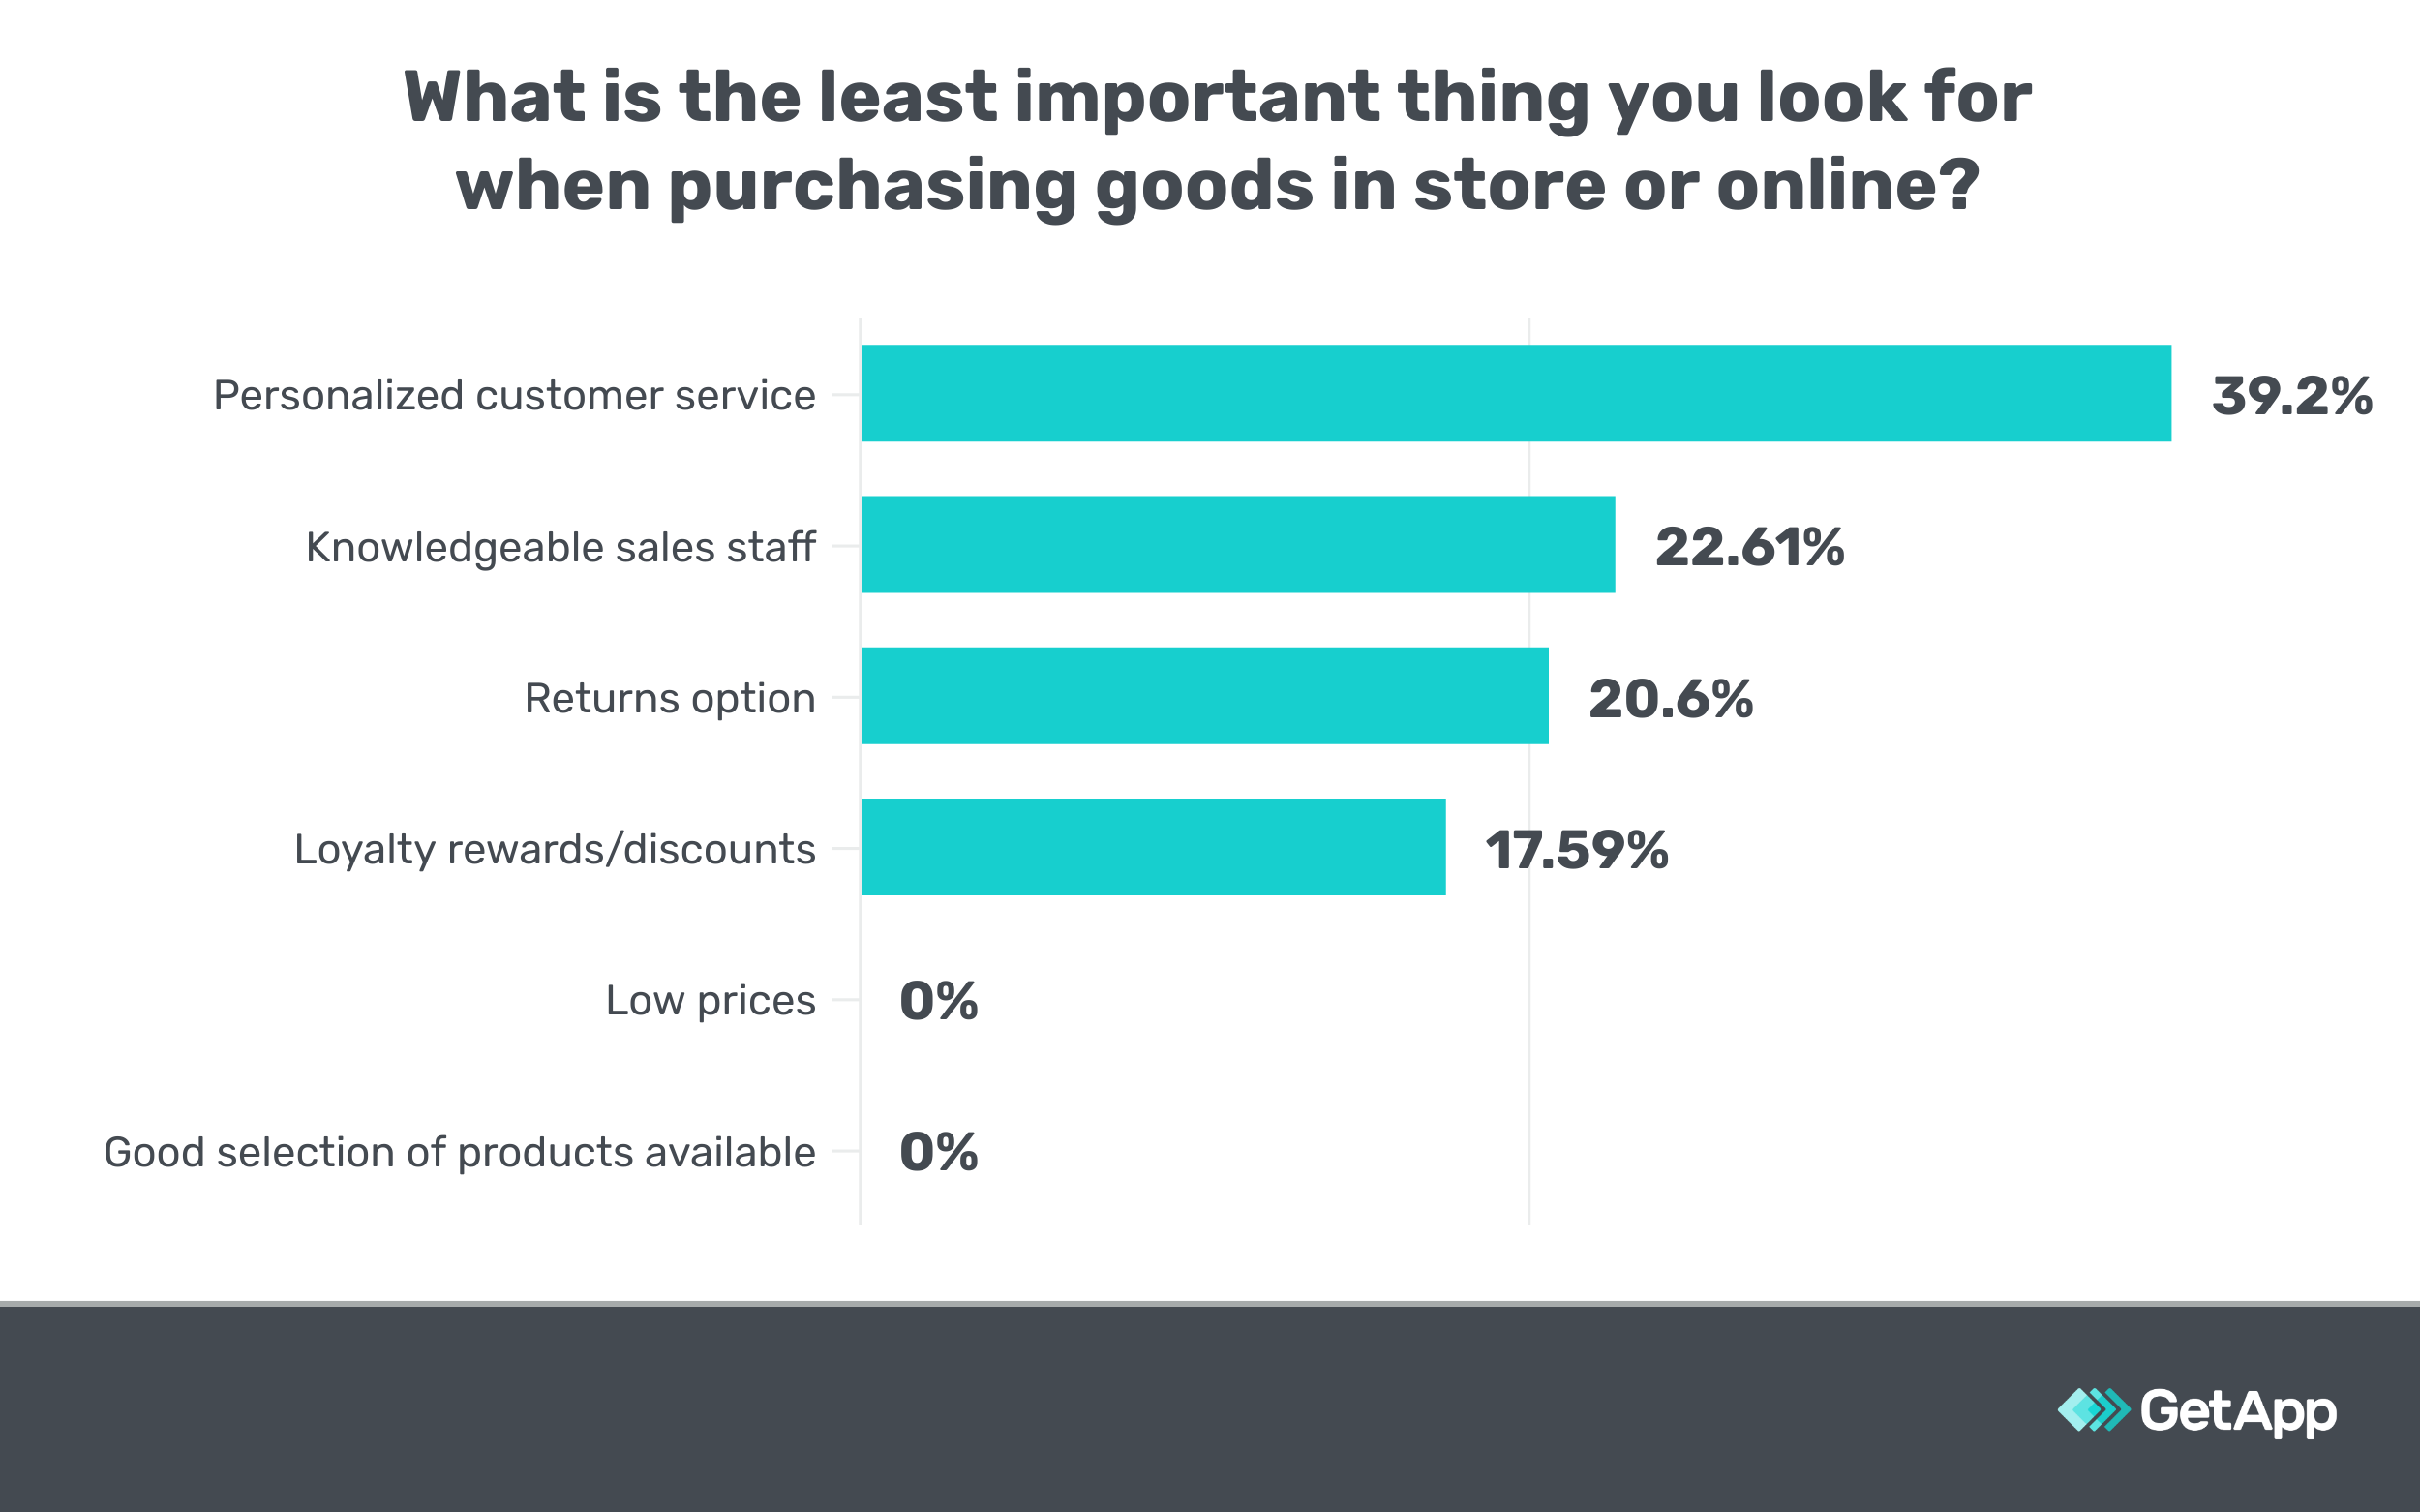 Bar chart showing that personalized customer service is the least important factor in purchase decisions